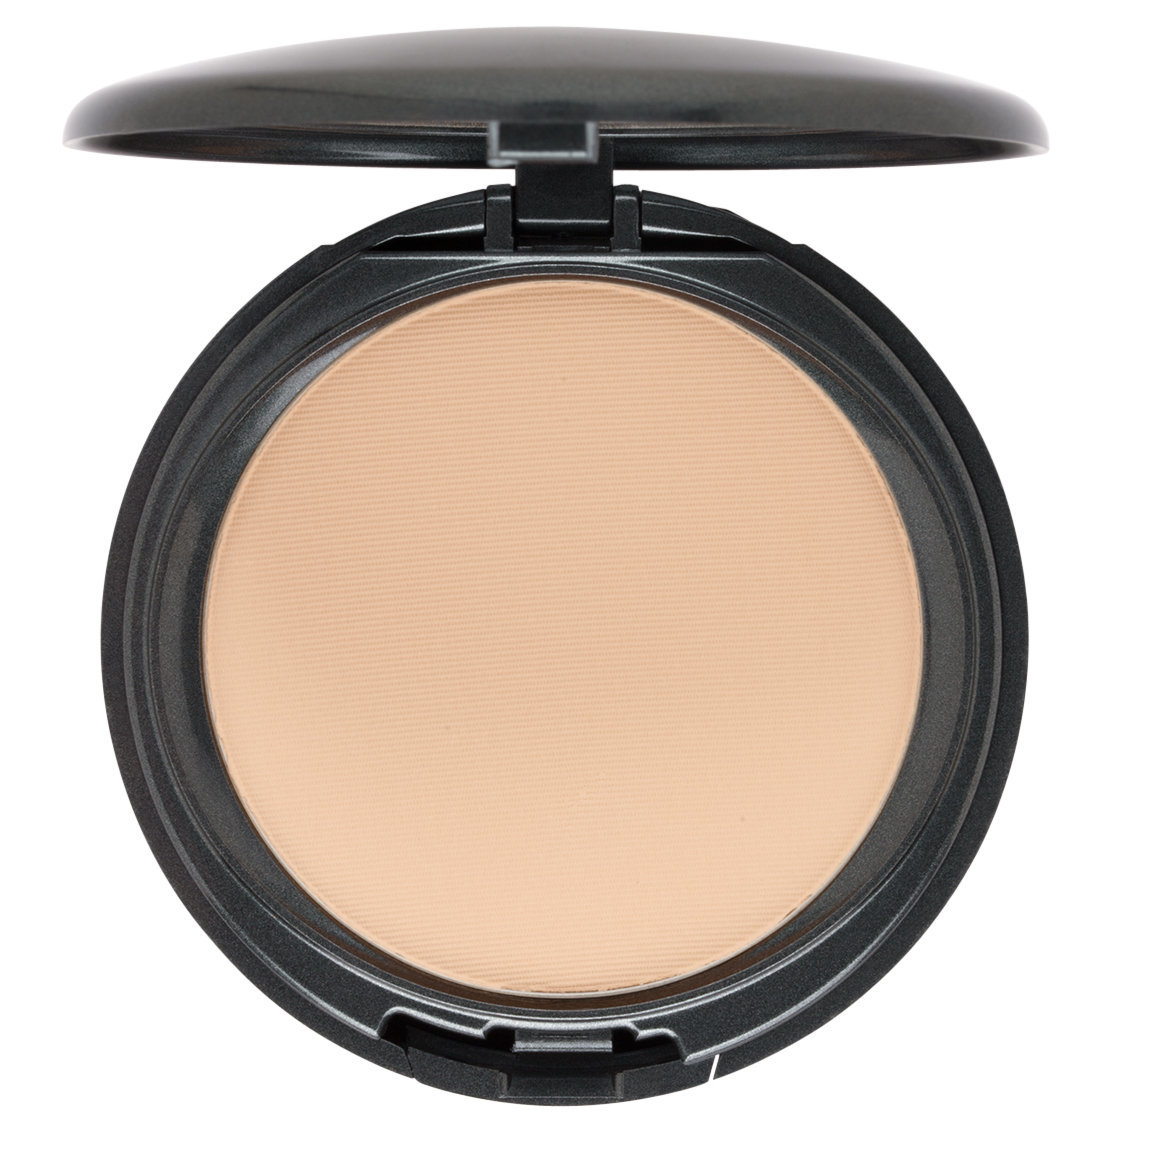 COVER | FX Pressed Mineral Foundation G10 product swatch.